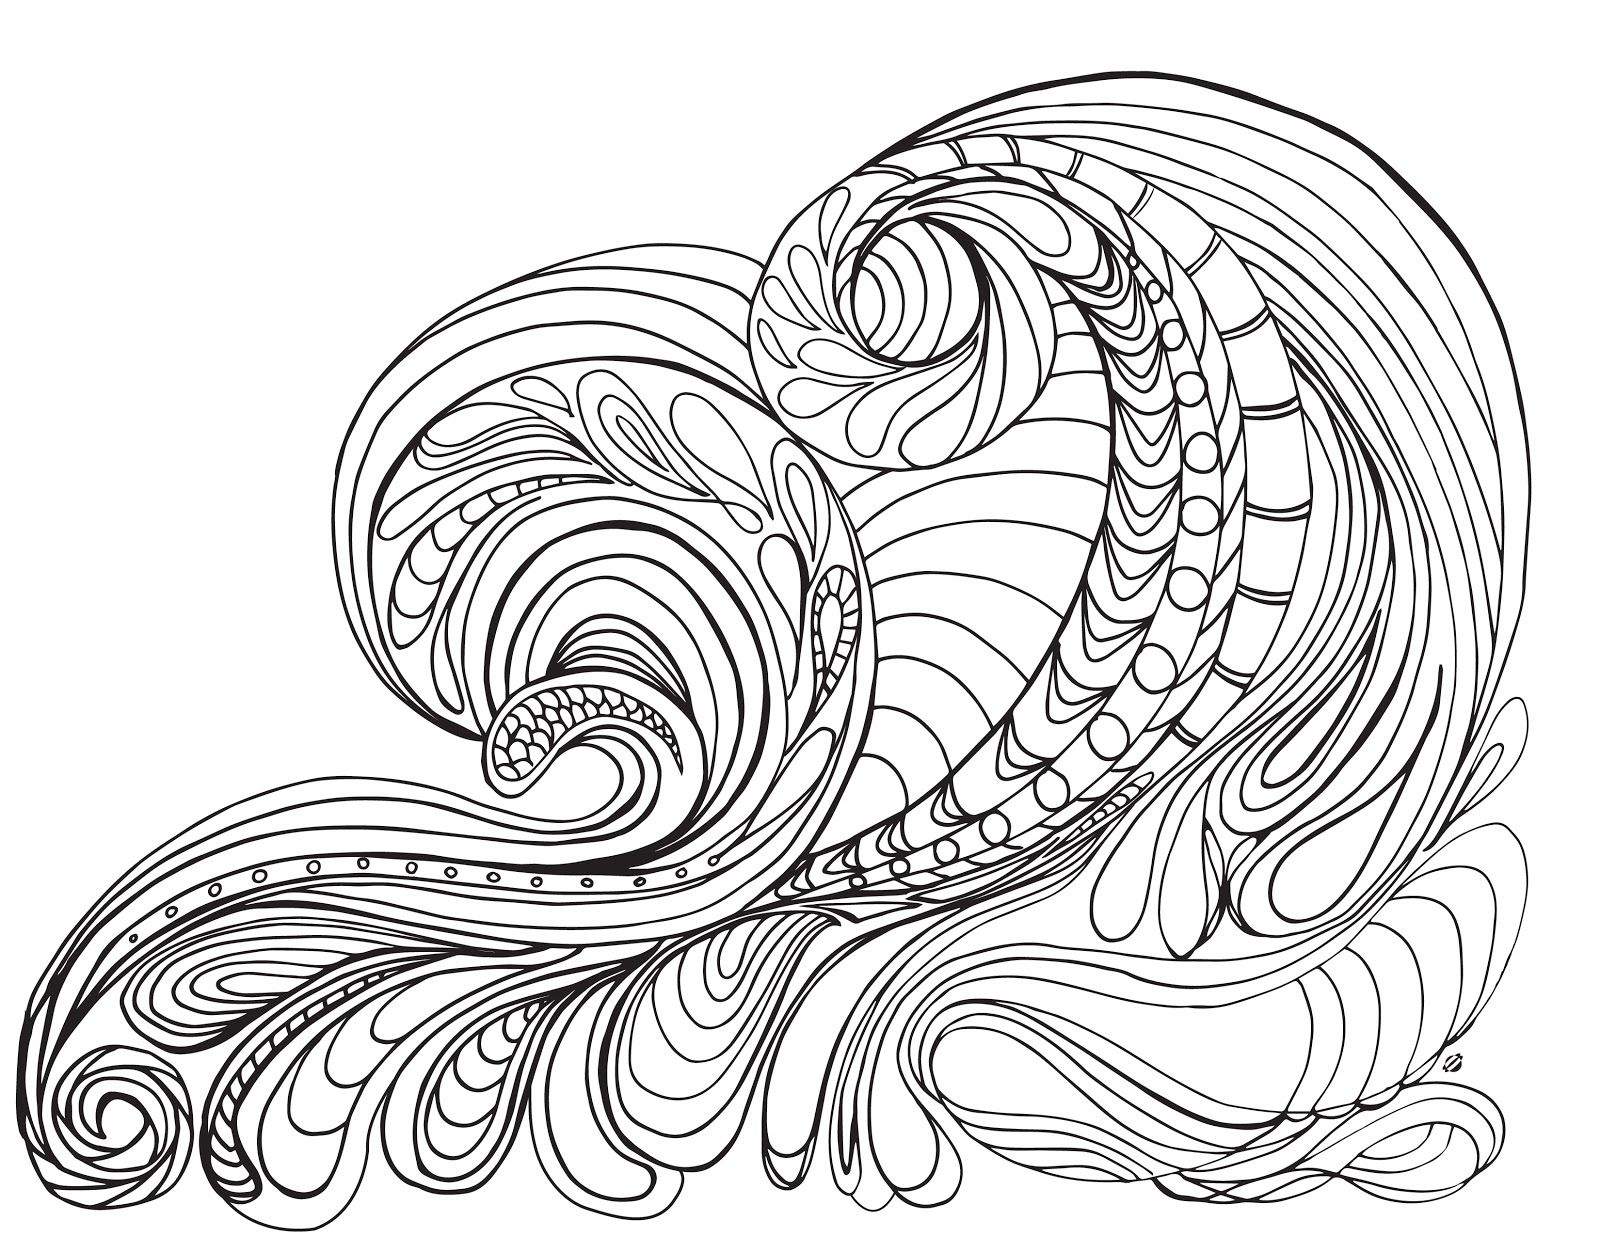 Ocean Waves Drawing at GetDrawings.com | Free for personal use Ocean ...